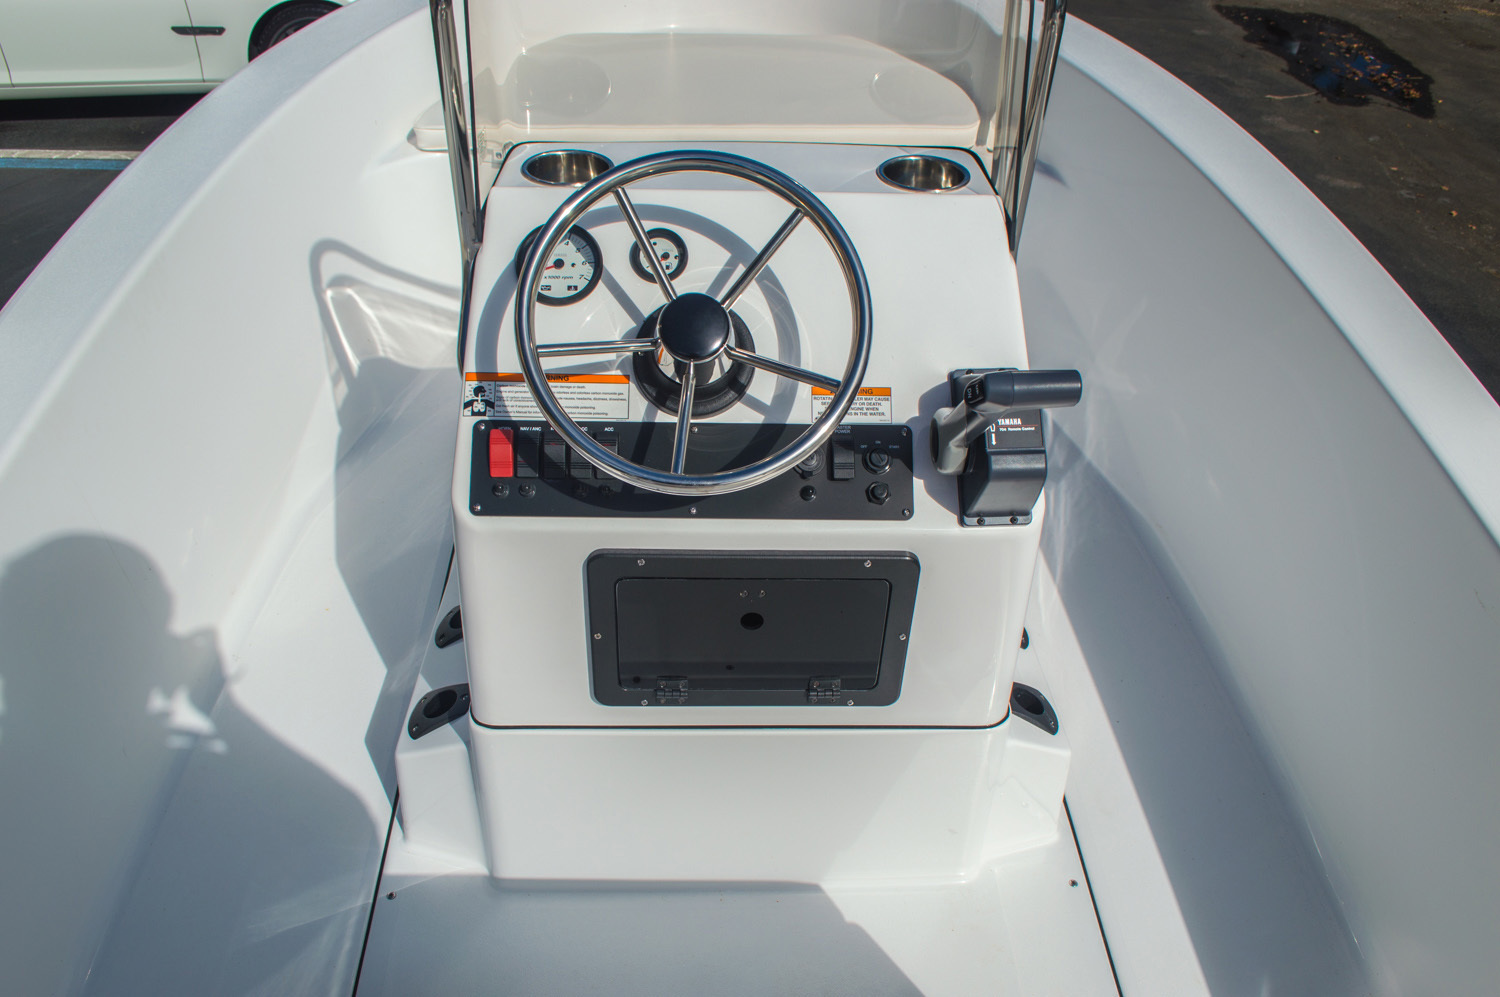 Thumbnail 19 for New 2016 Sportsman 17 Island Reef boat for sale in Vero Beach, FL